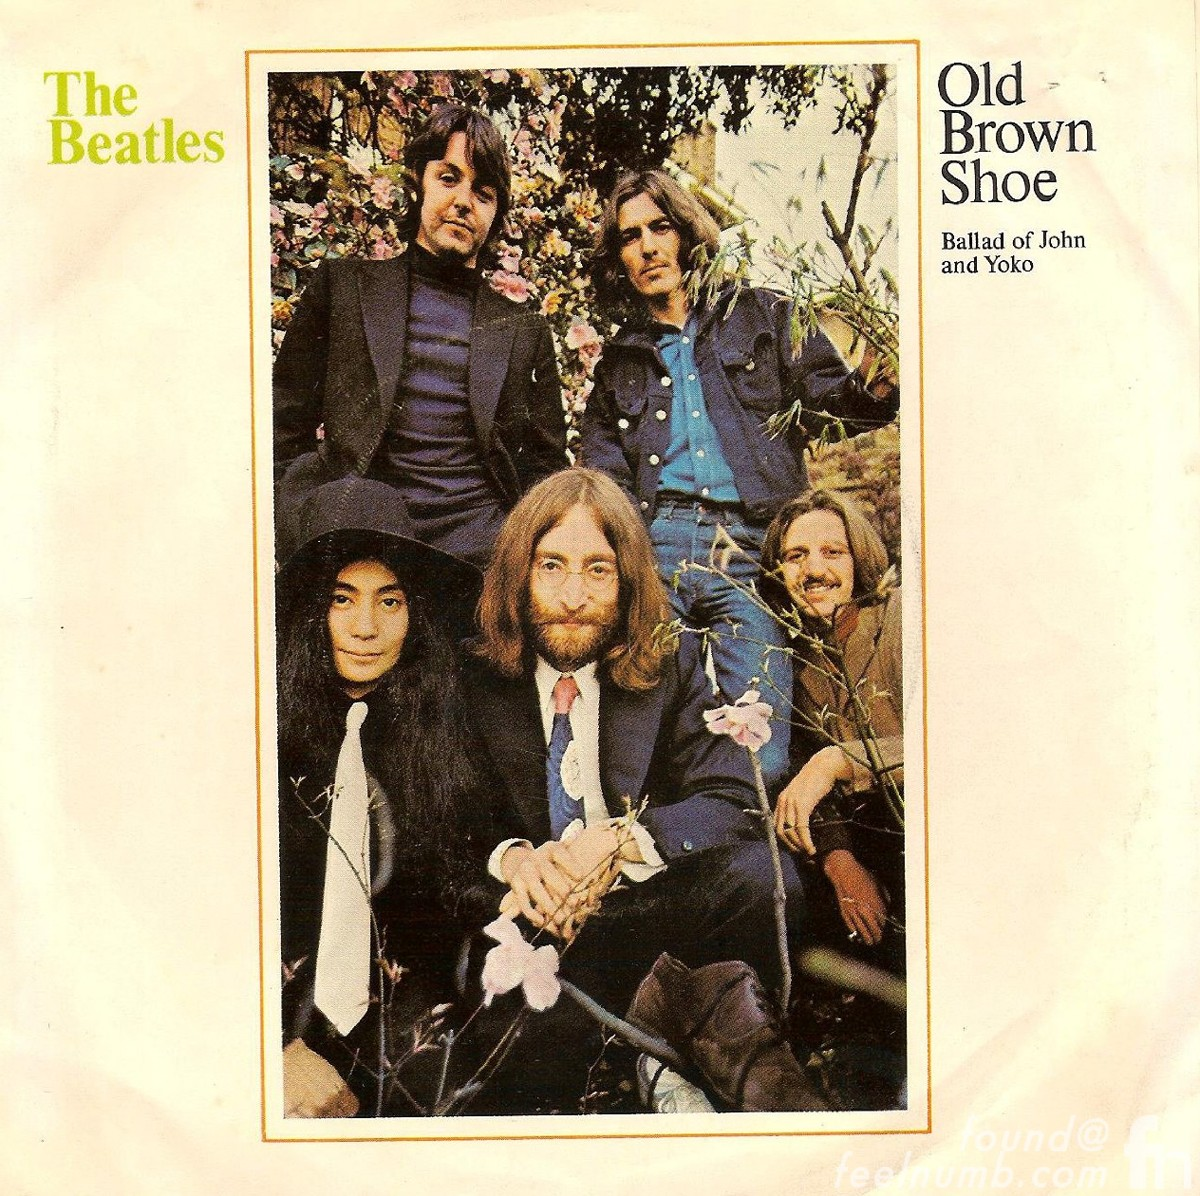 The Beatles Old Brown Show Yoko Ono Album Cover Single